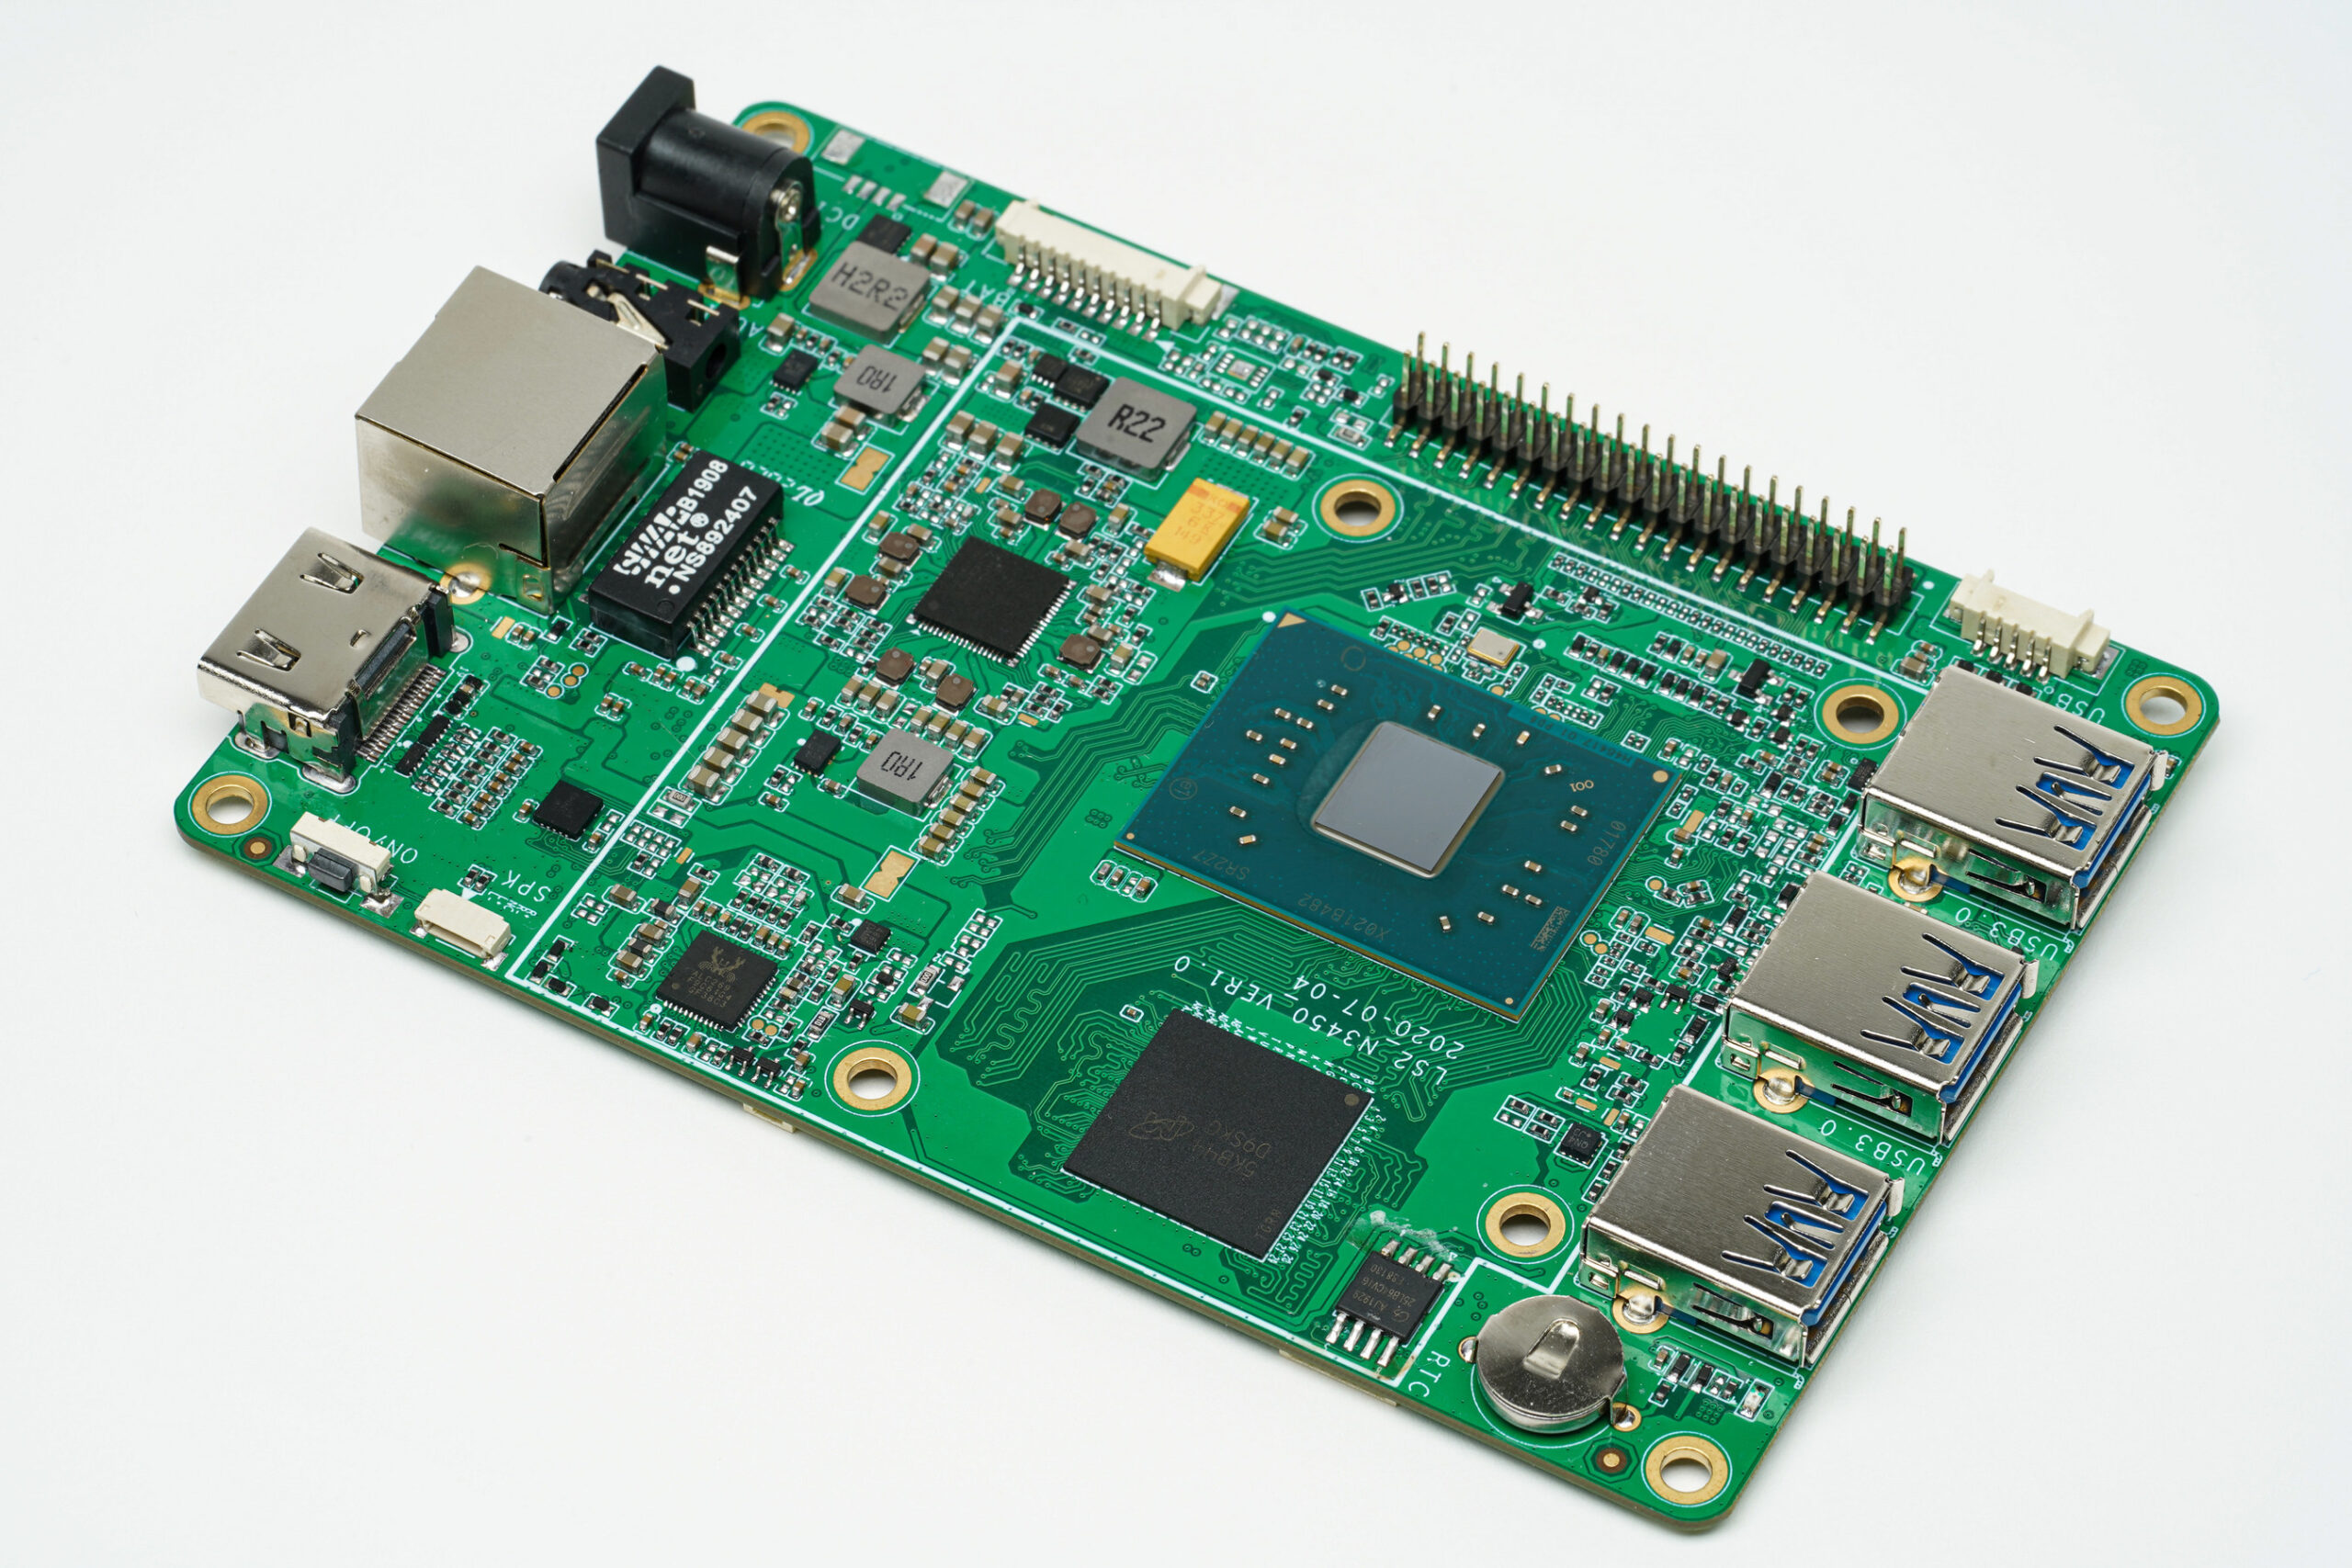 Hackboard 2 Intel Gemini Lake Based SBC Features Windows 10 Pro